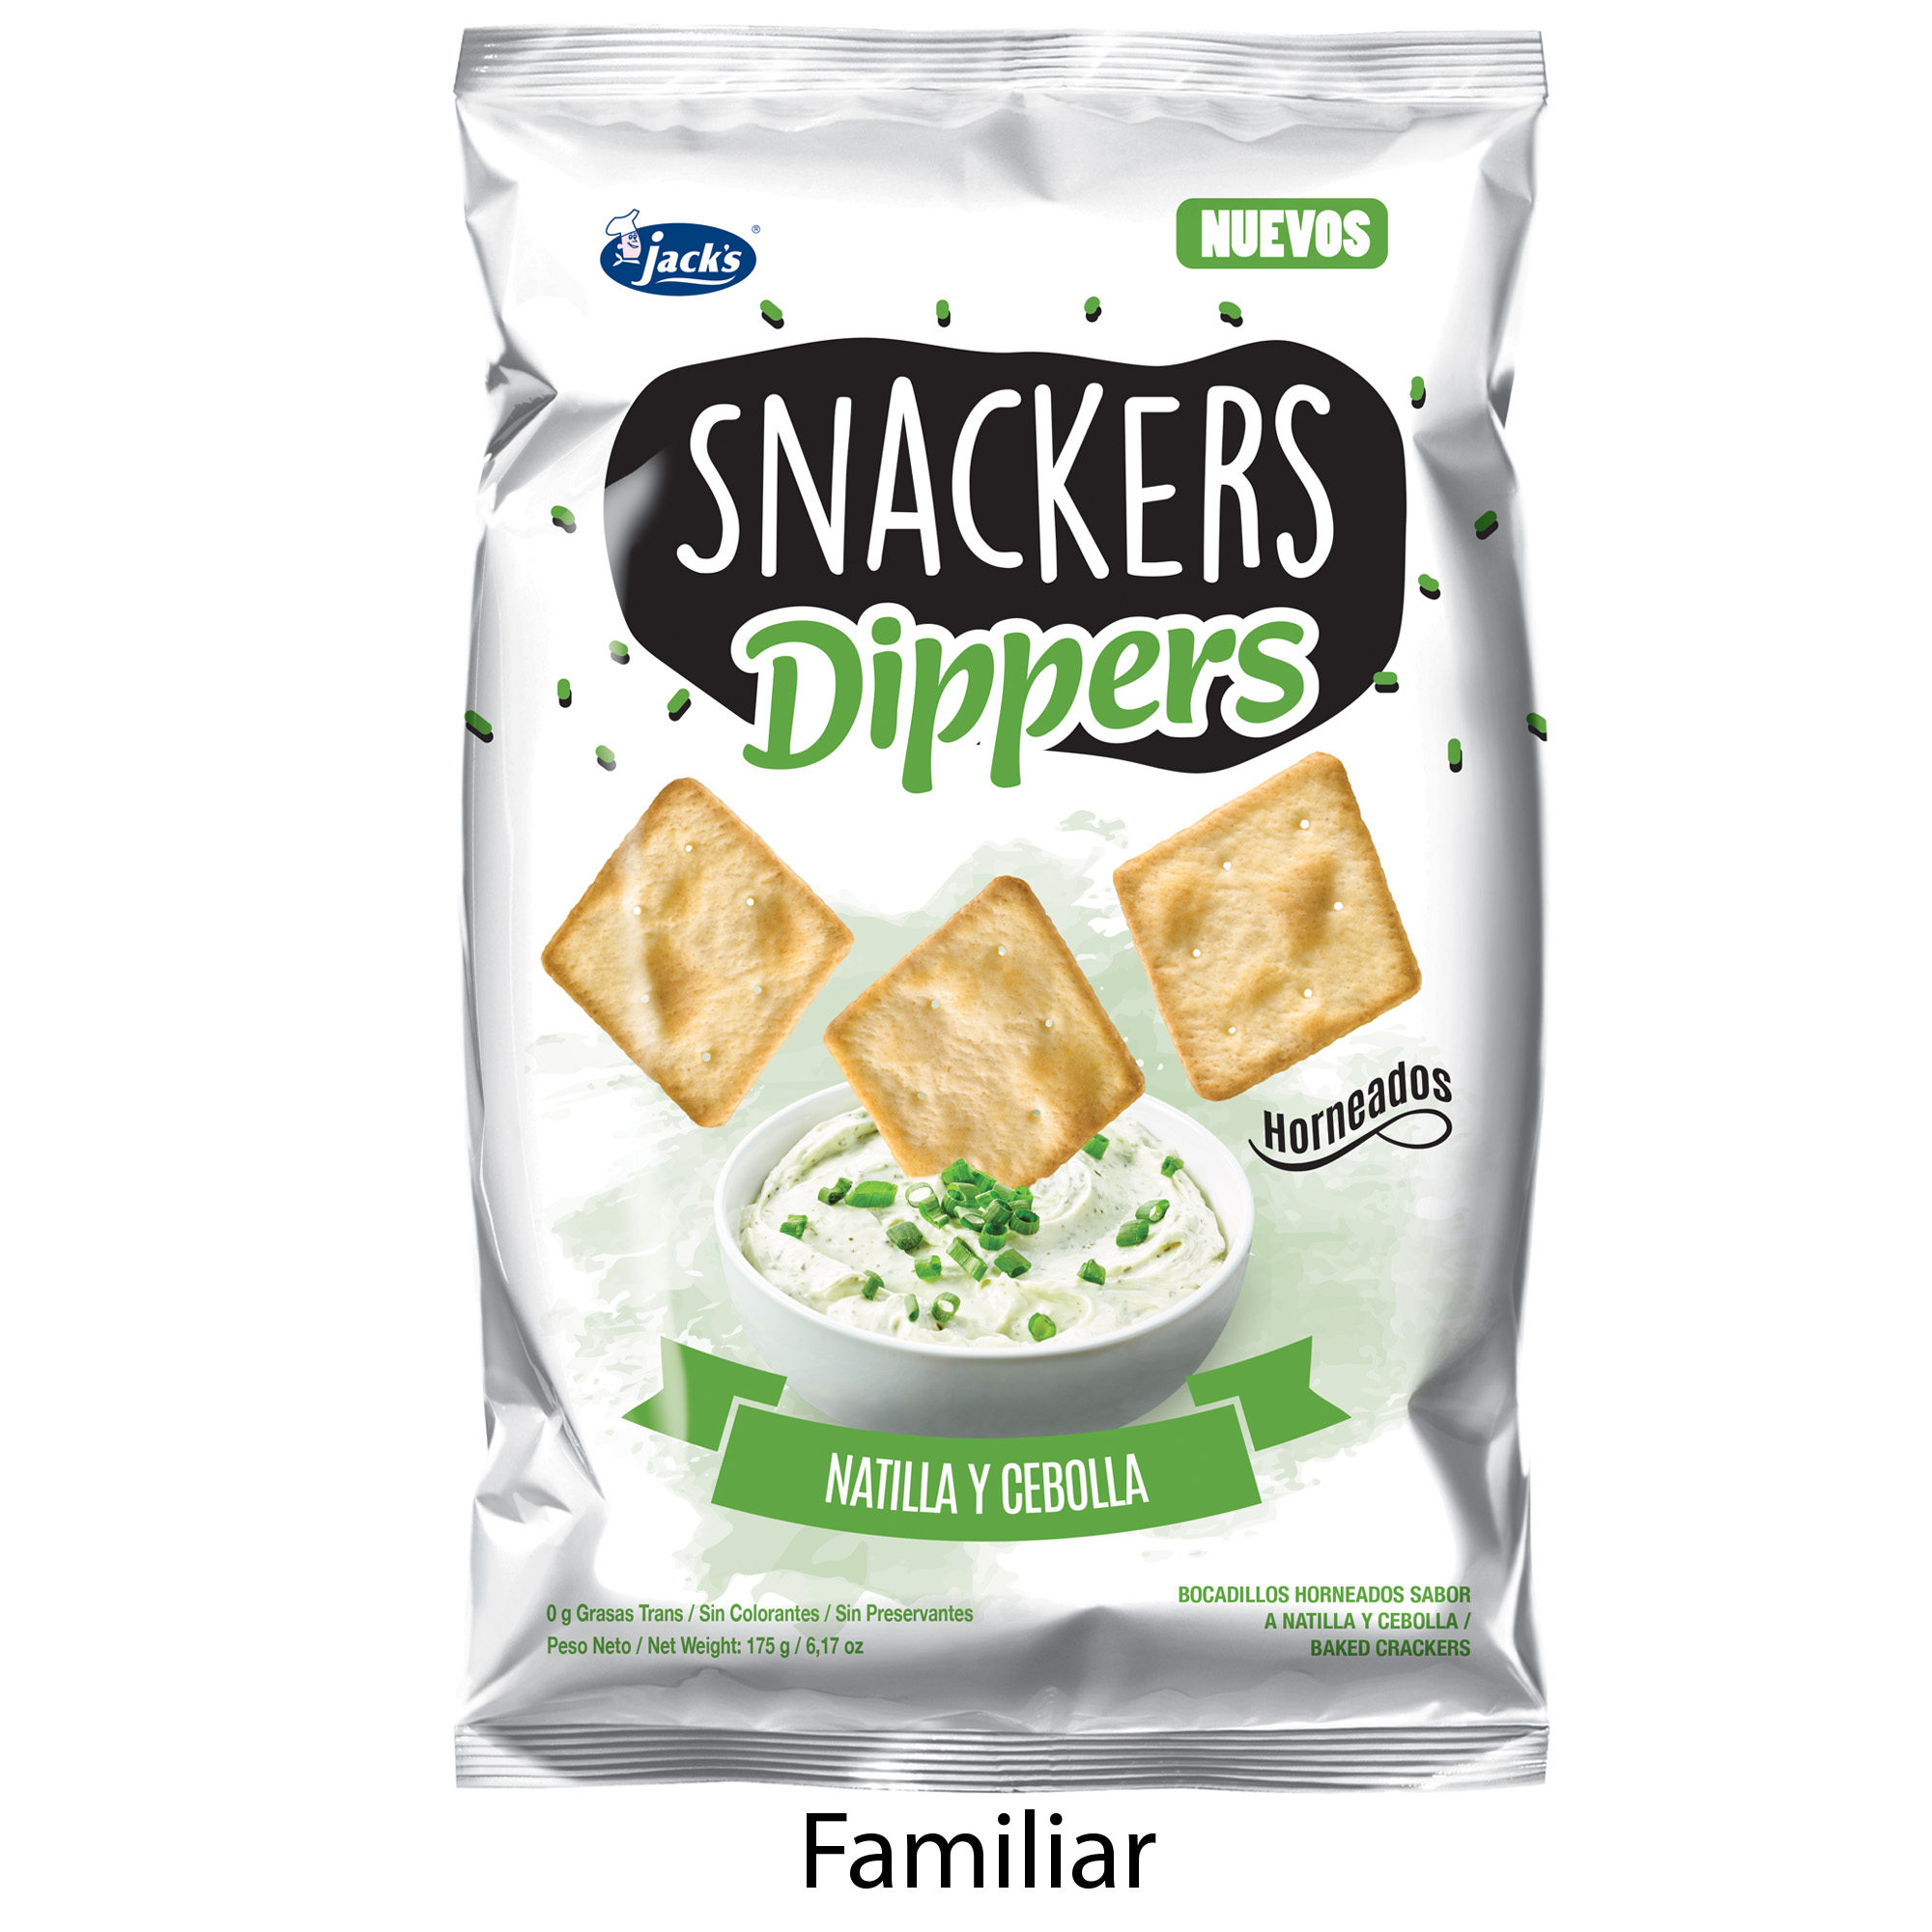 SNACKERS DIPPERS presentac pag web